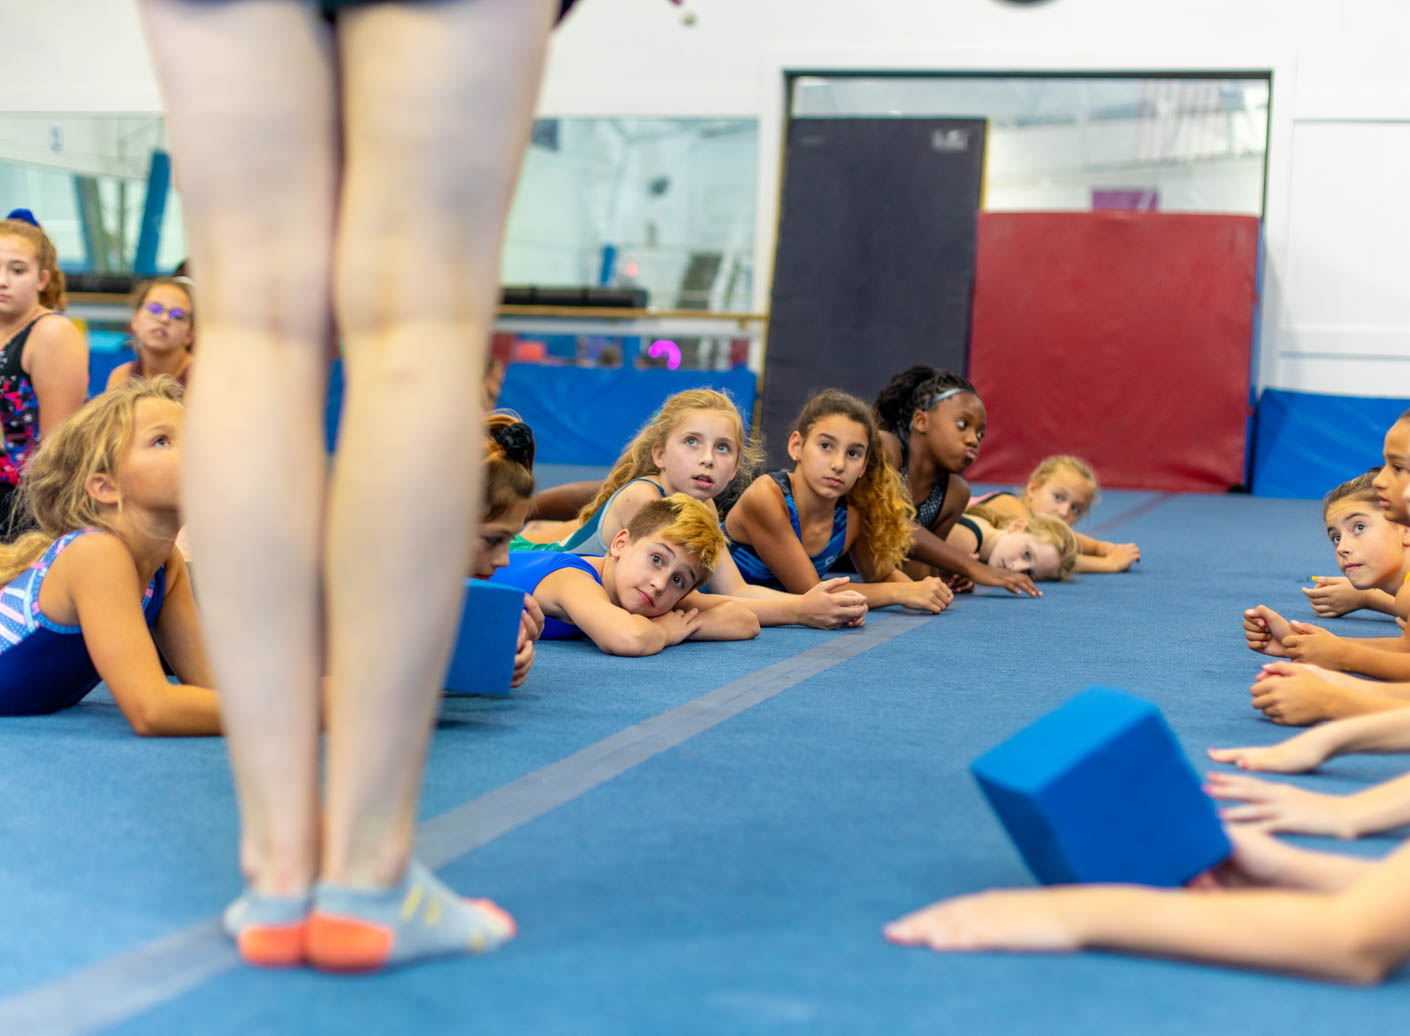 campers looking on eagerly while sitting on the mats during instruction